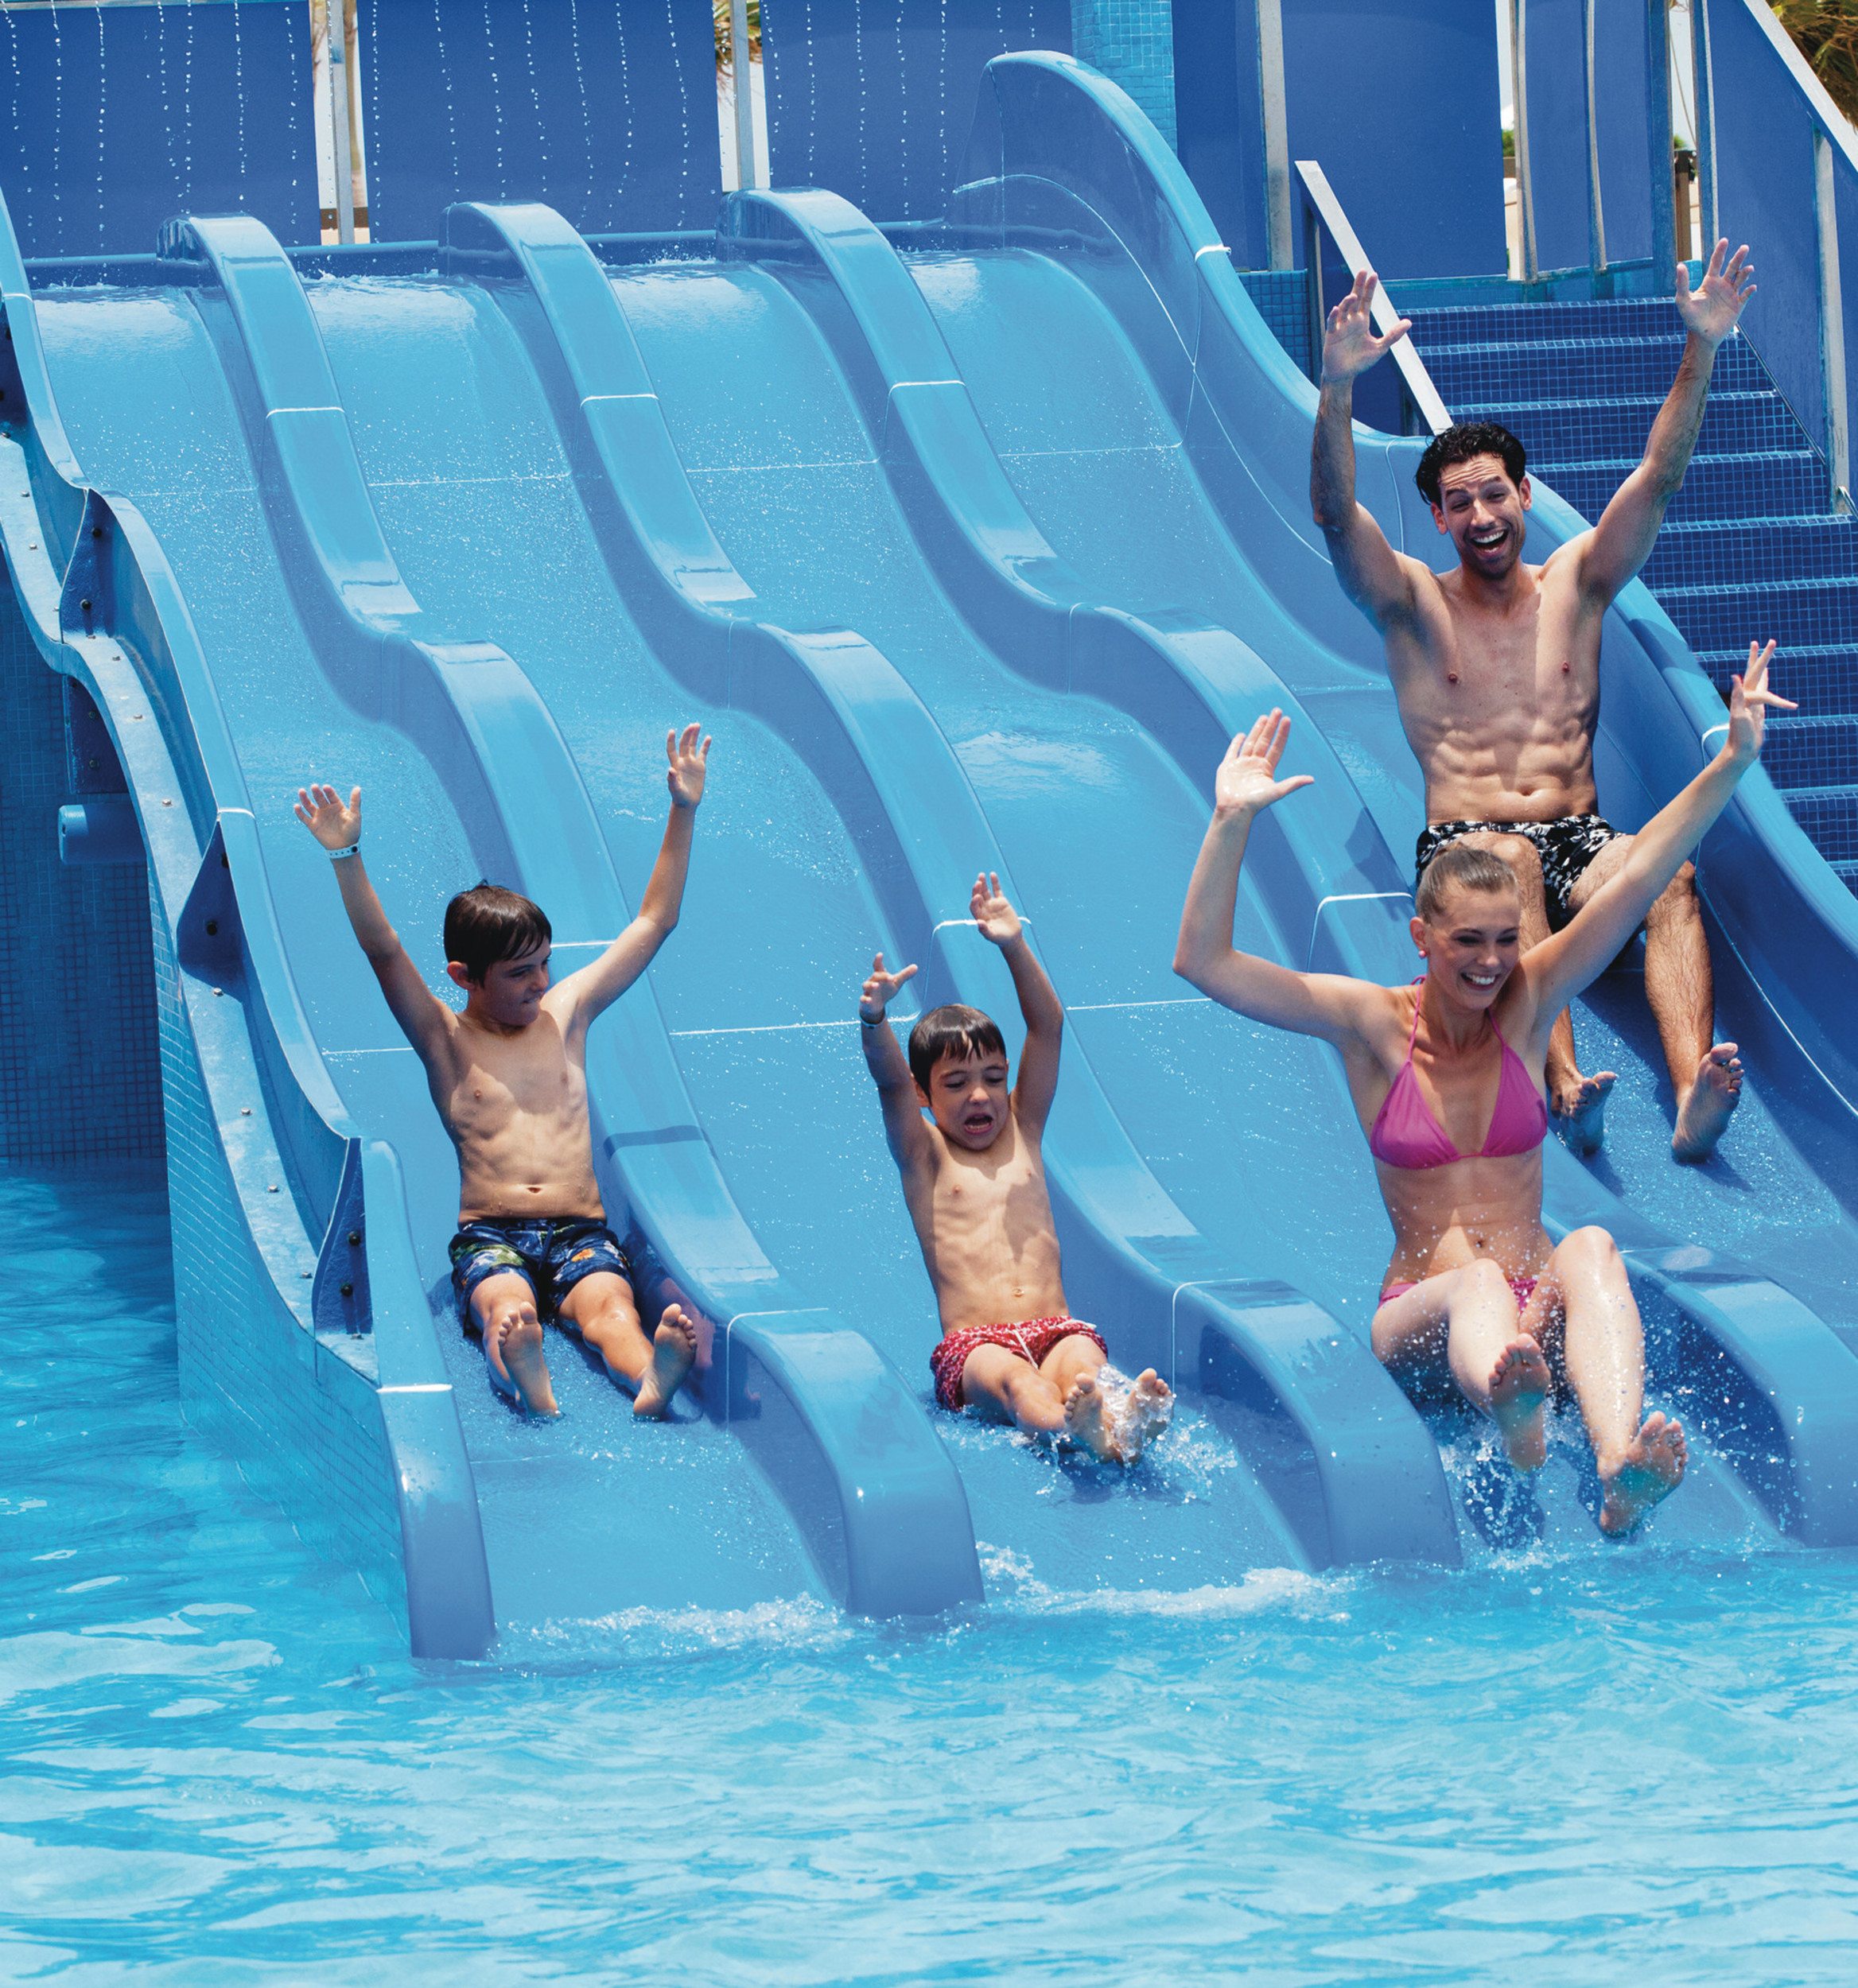 PBL_14_029 – Children's pool with slides